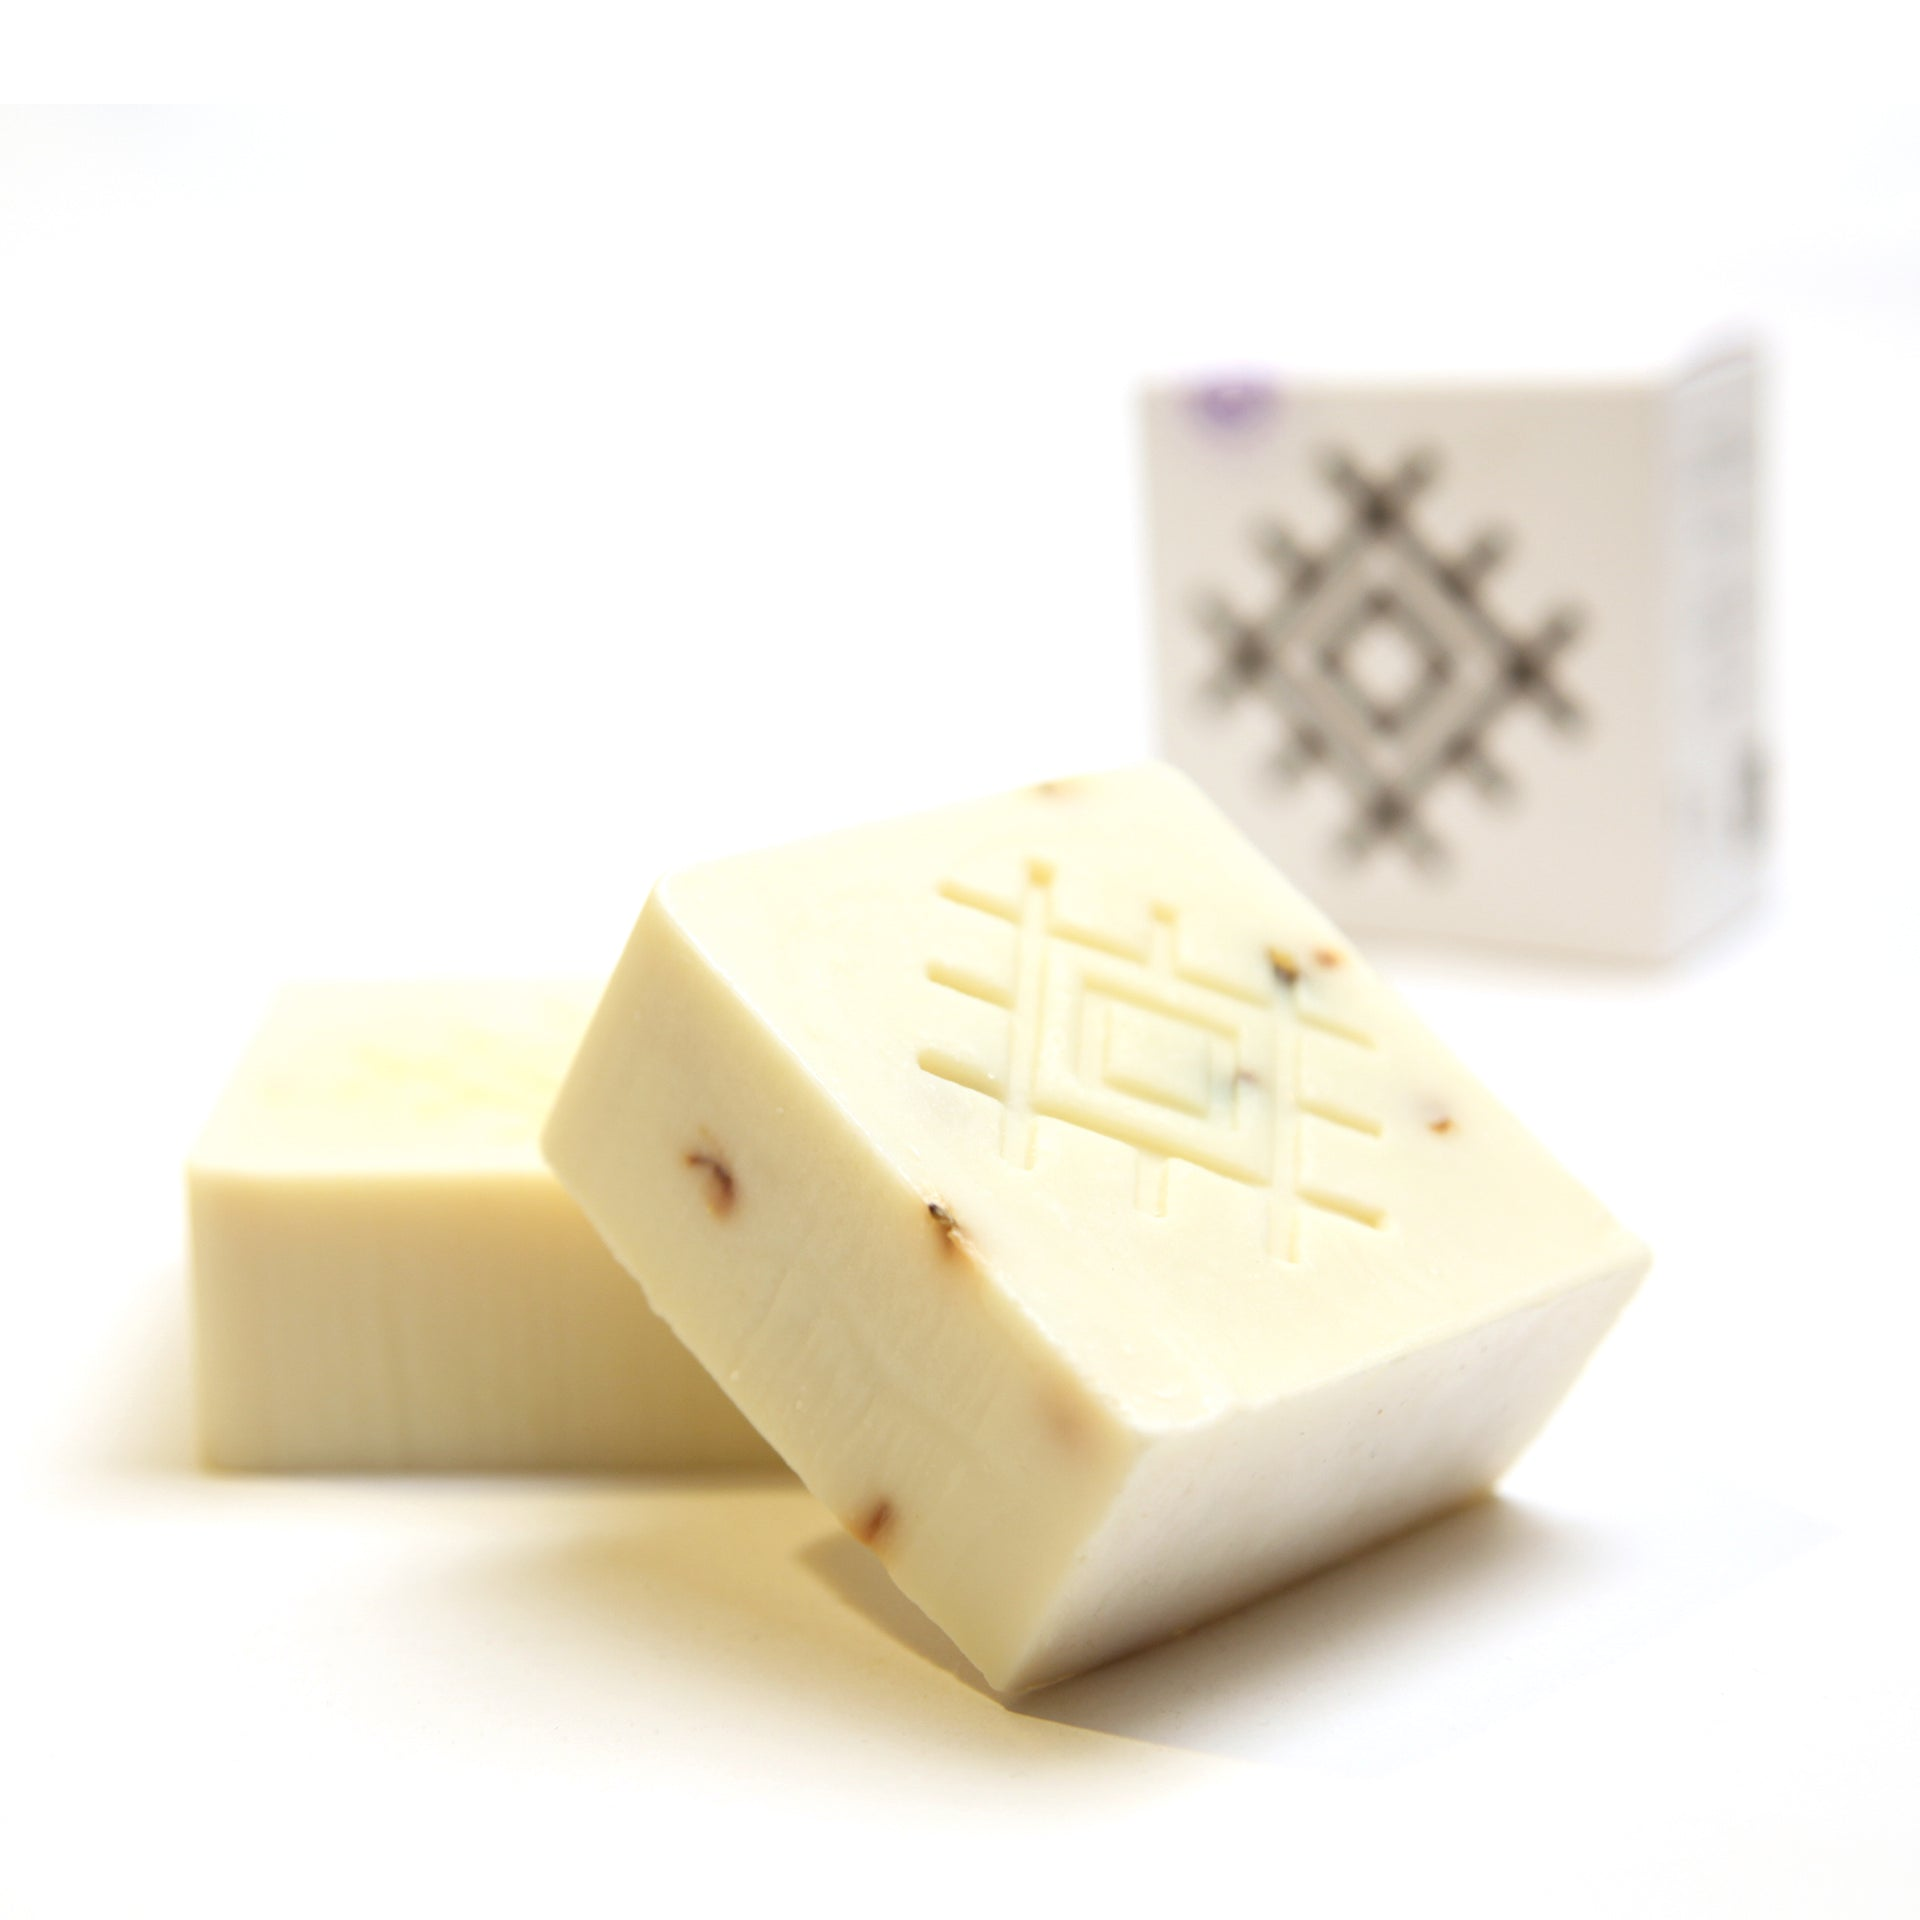 Sabun – Pıtrak (Akne)               Soap – Cocklebur (Acne)